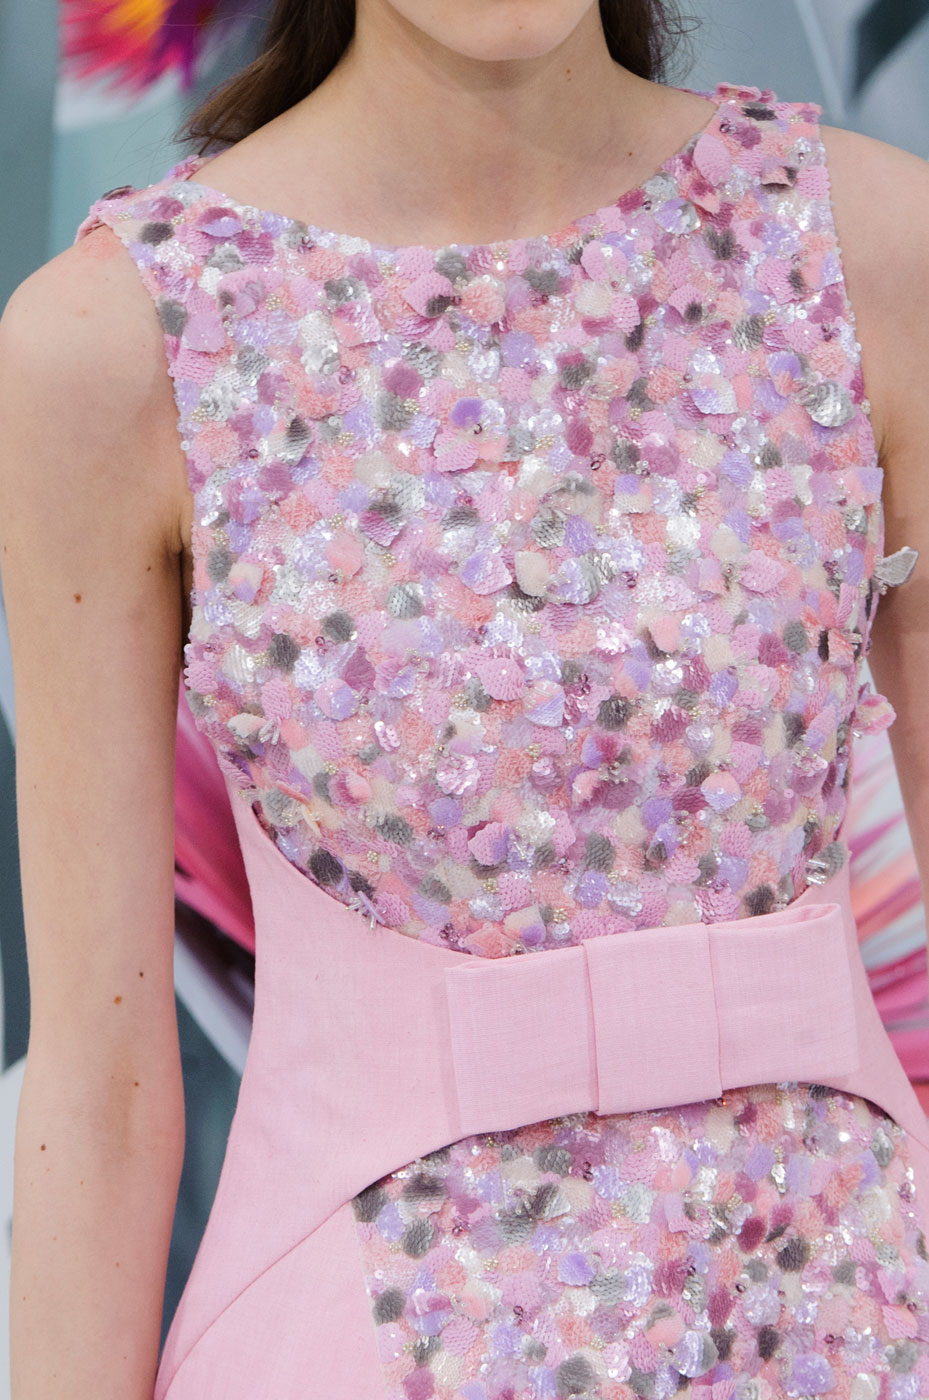 Chanel-fashion-runway-show-close-ups-haute-couture-paris-spring-summer-2015-the-impression-127